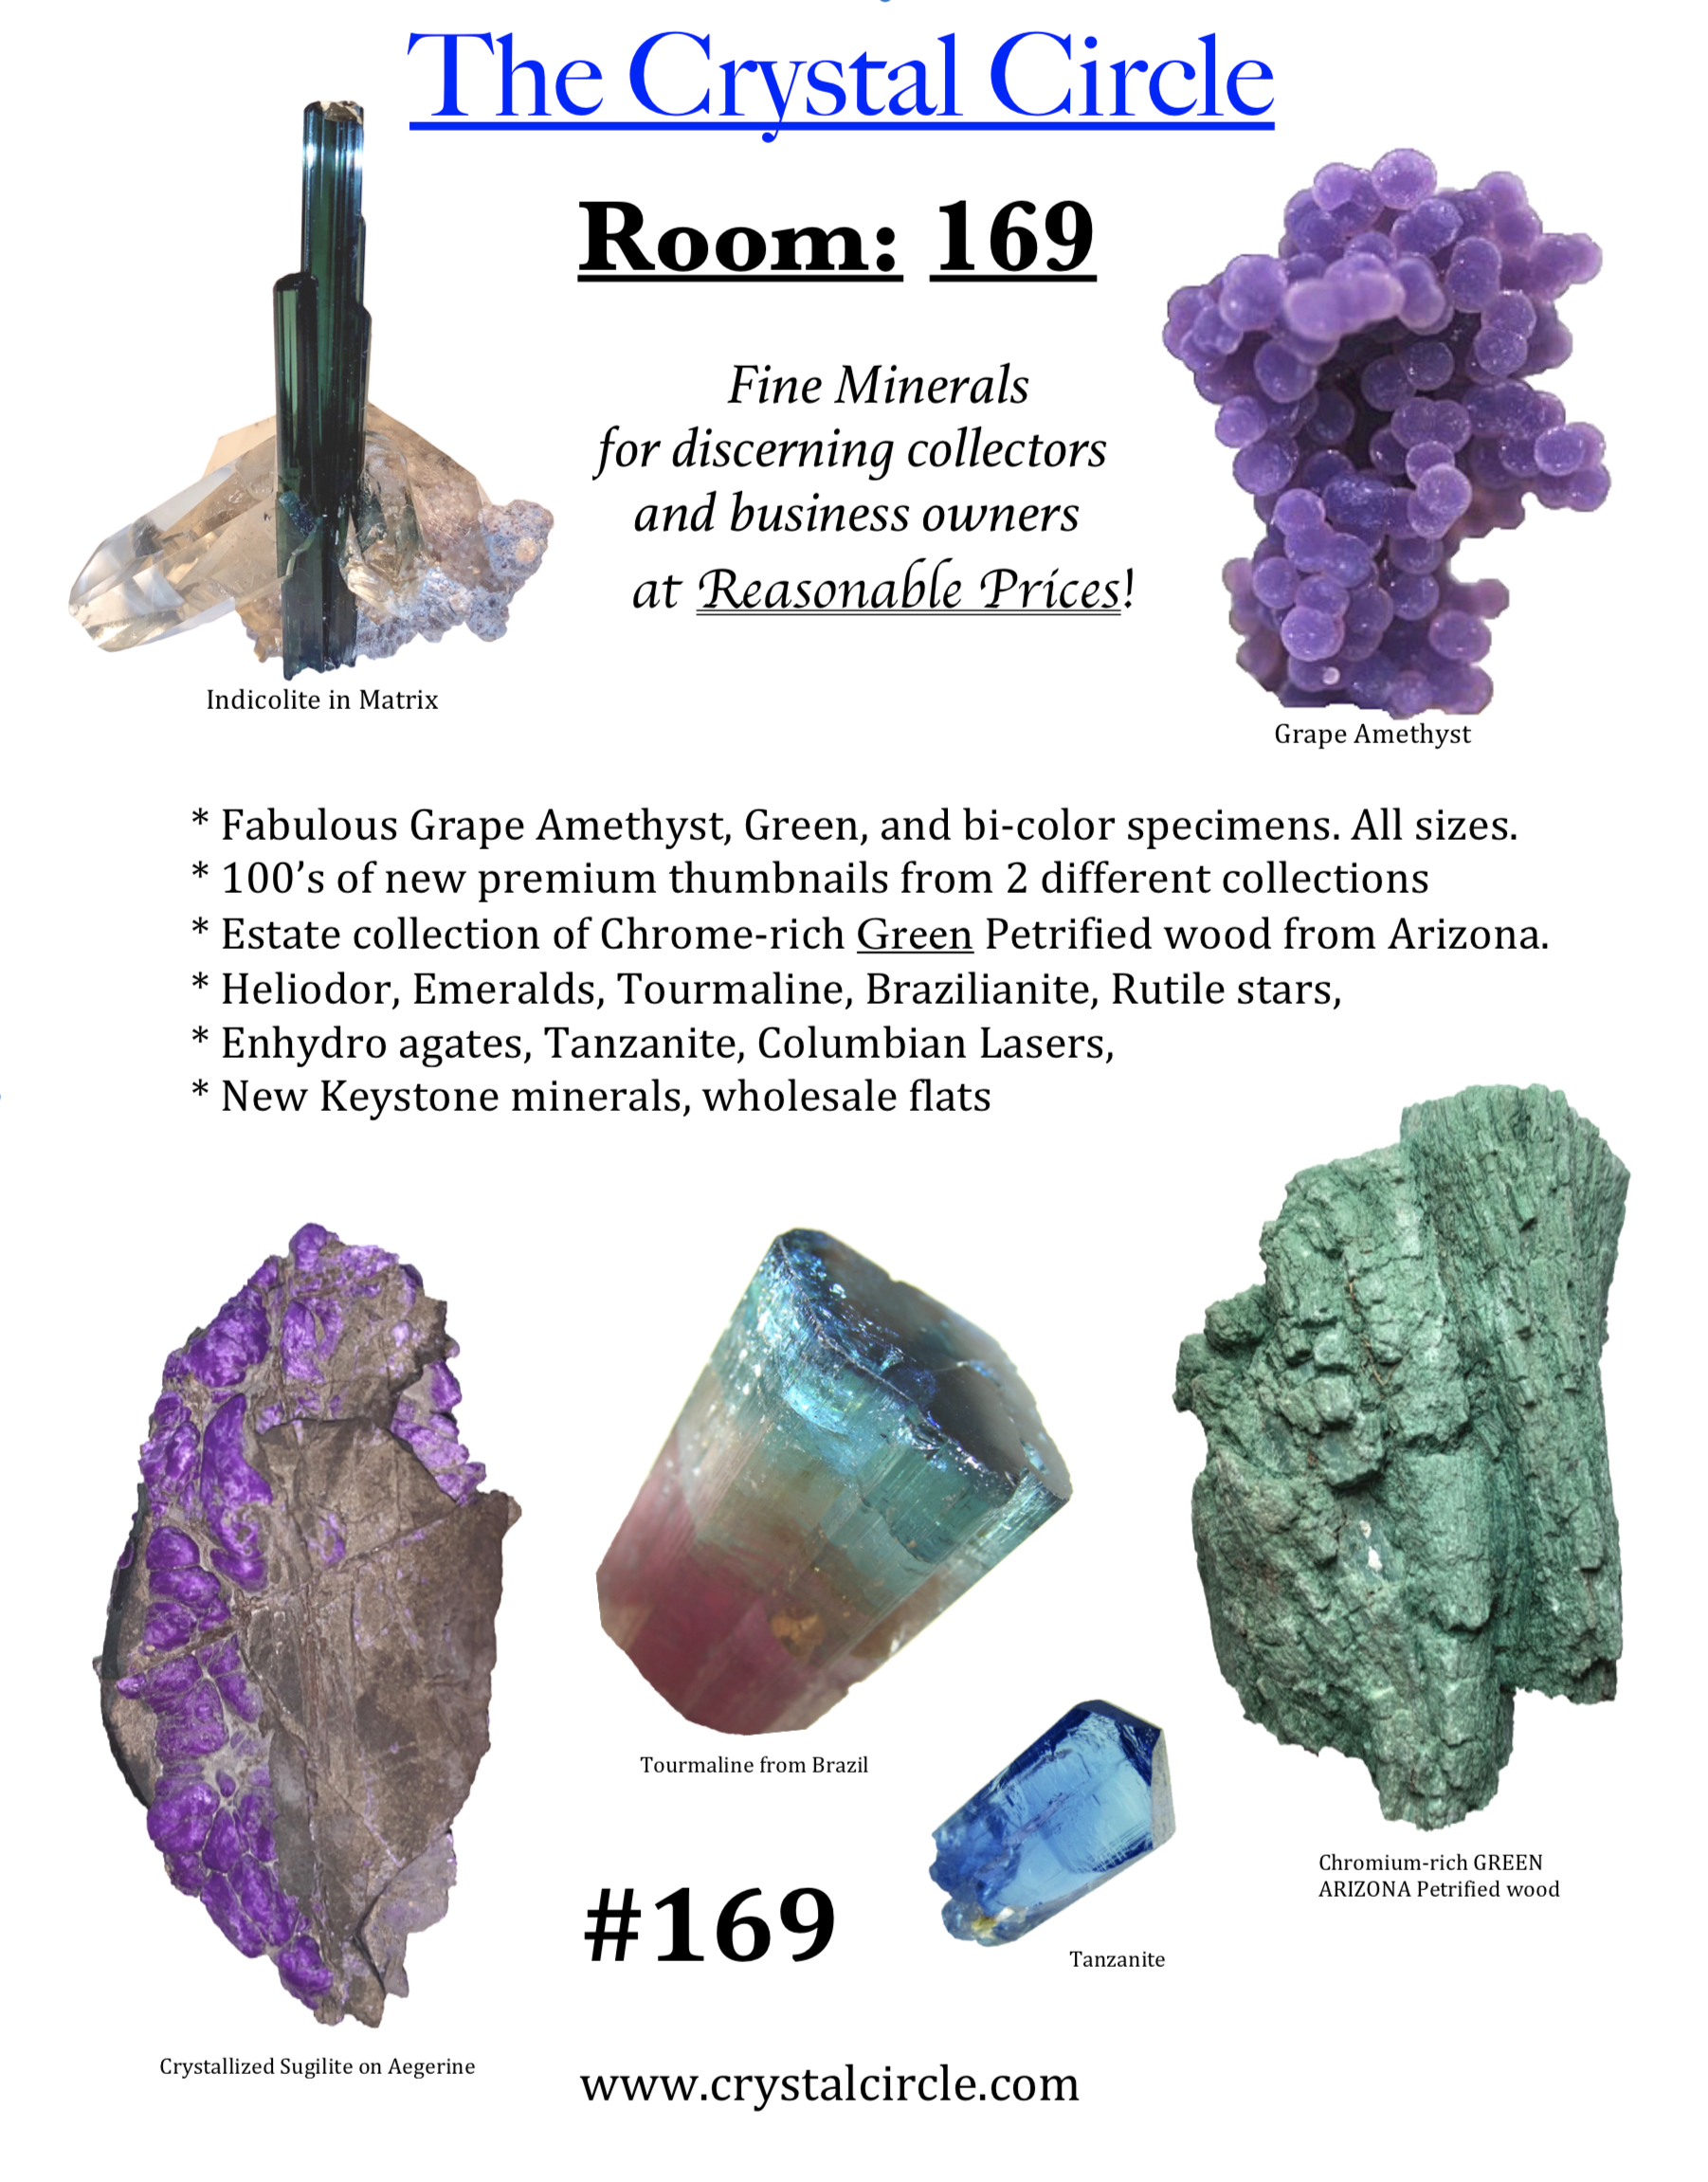 The Crystal Circle sells minerals in Tucson ...